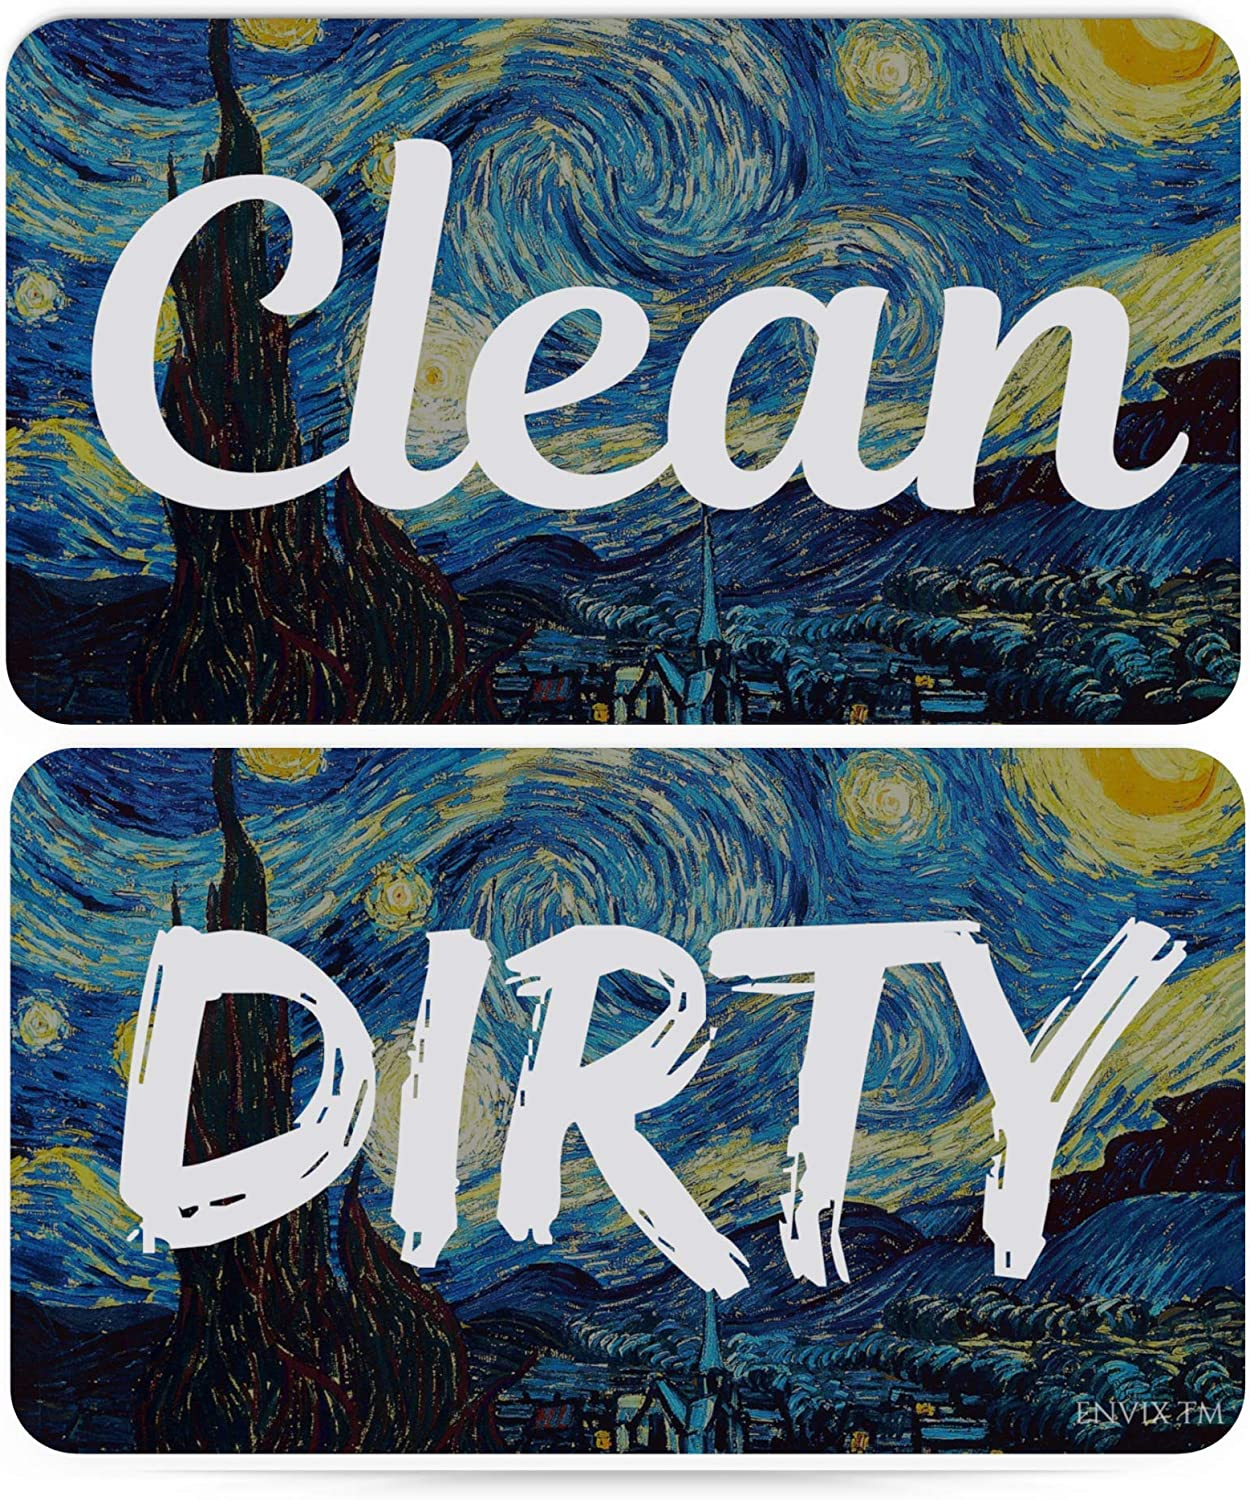 Dishwasher Magnet Clean Dirty Sign - Strongest Magnet Double Sided Flip - With Bonus Metal Magnetic Plate - Universal Kitchen Dish Washer Reversible Indicator Van Gogh (Starry Night)